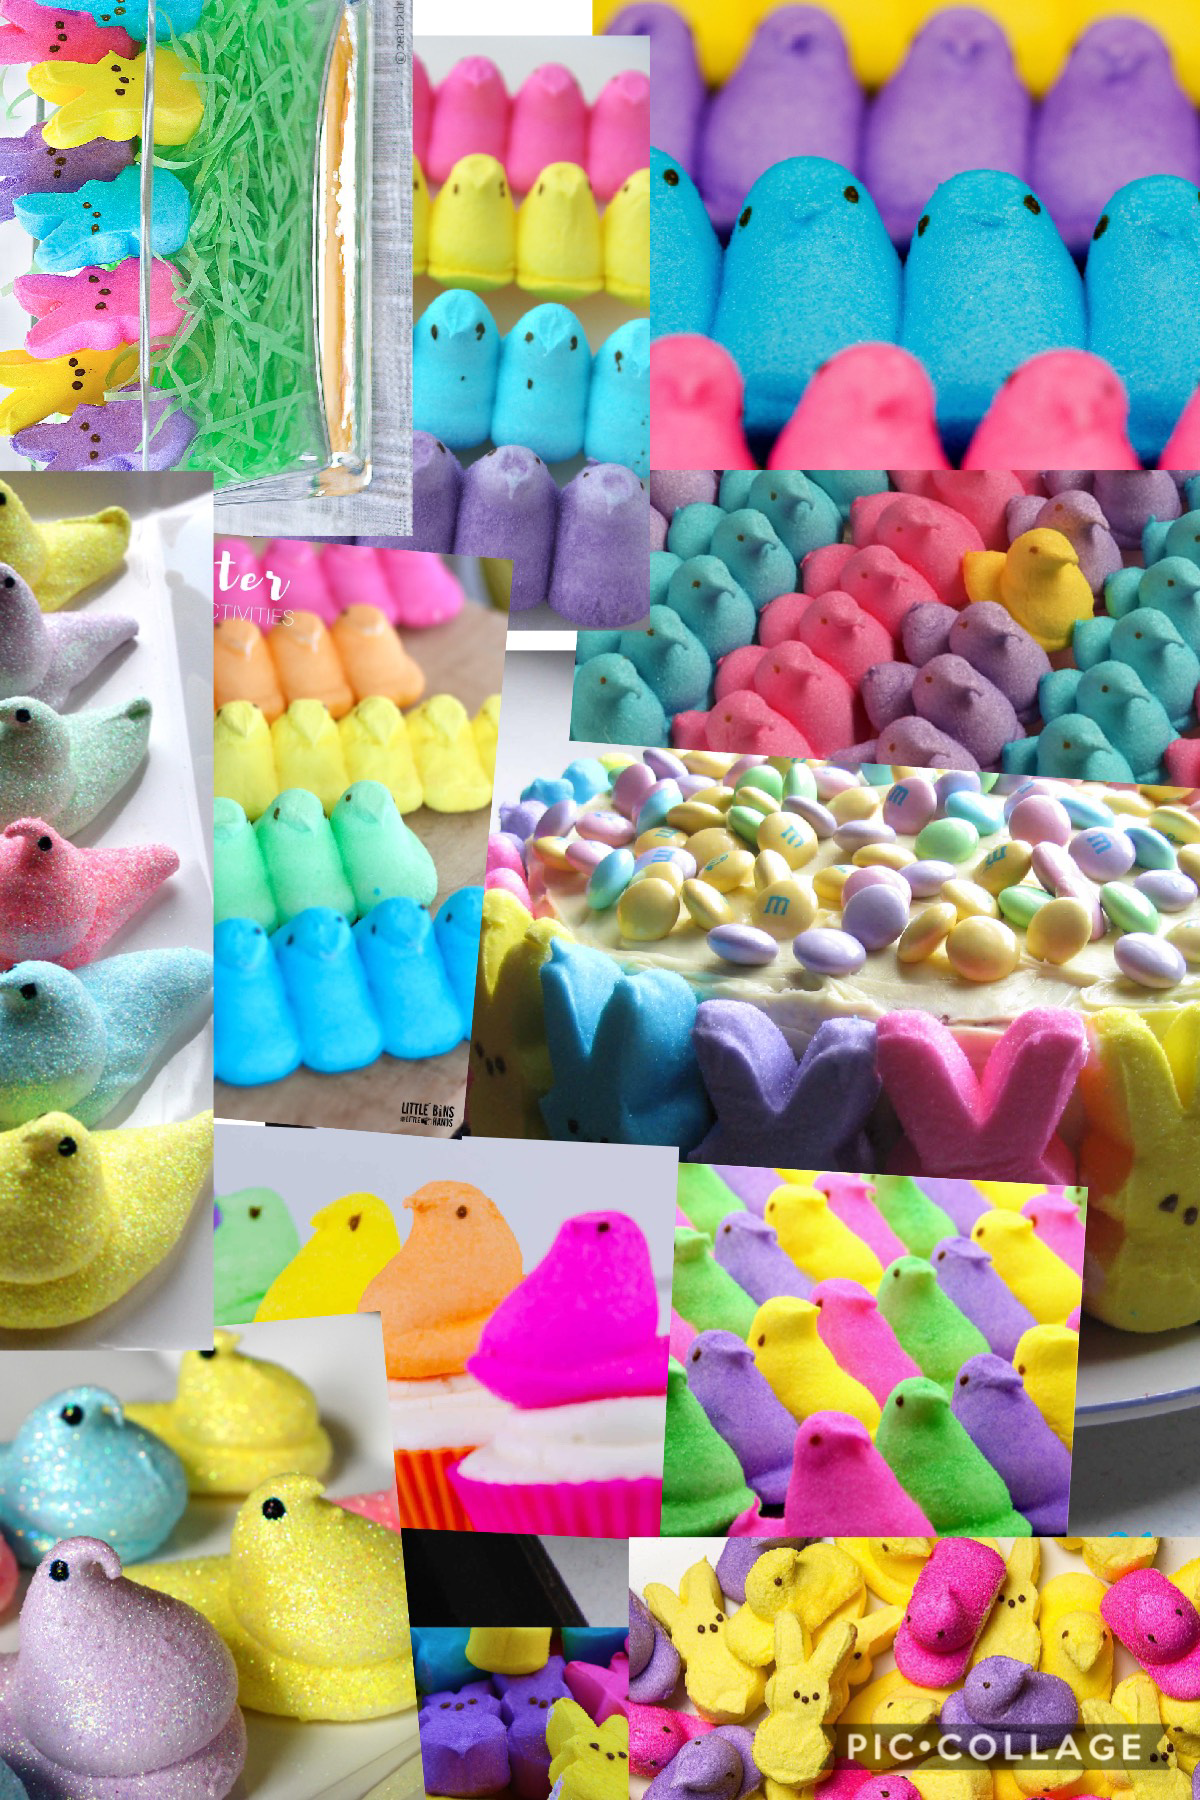 Hey guys let's get ready for Easter! Who likes peeps ?!